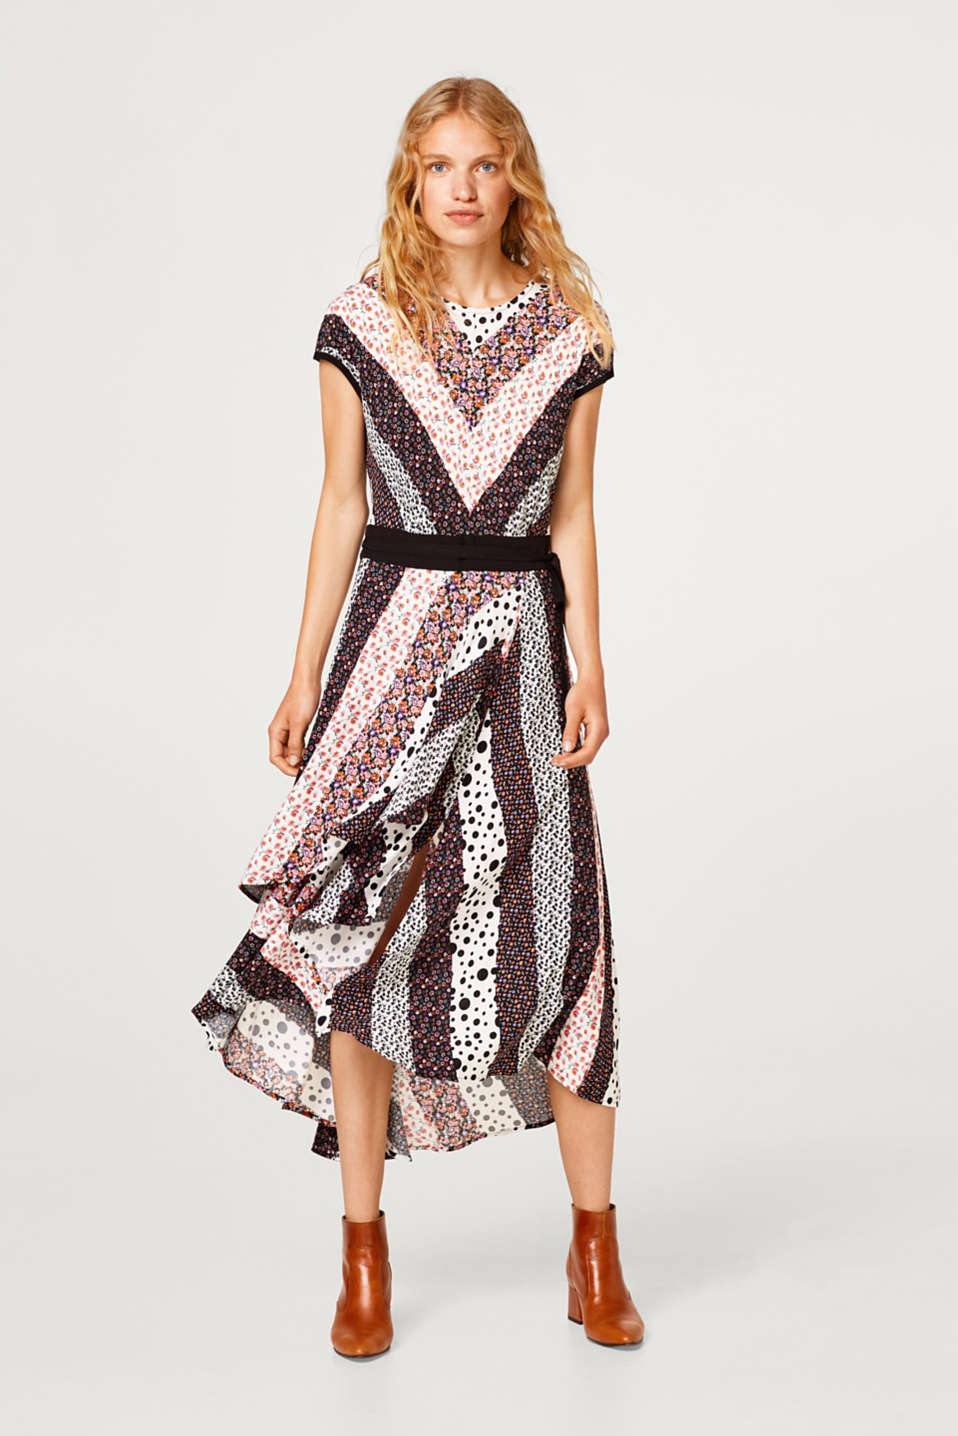 Dress in a mix of patterns with a high-low hem